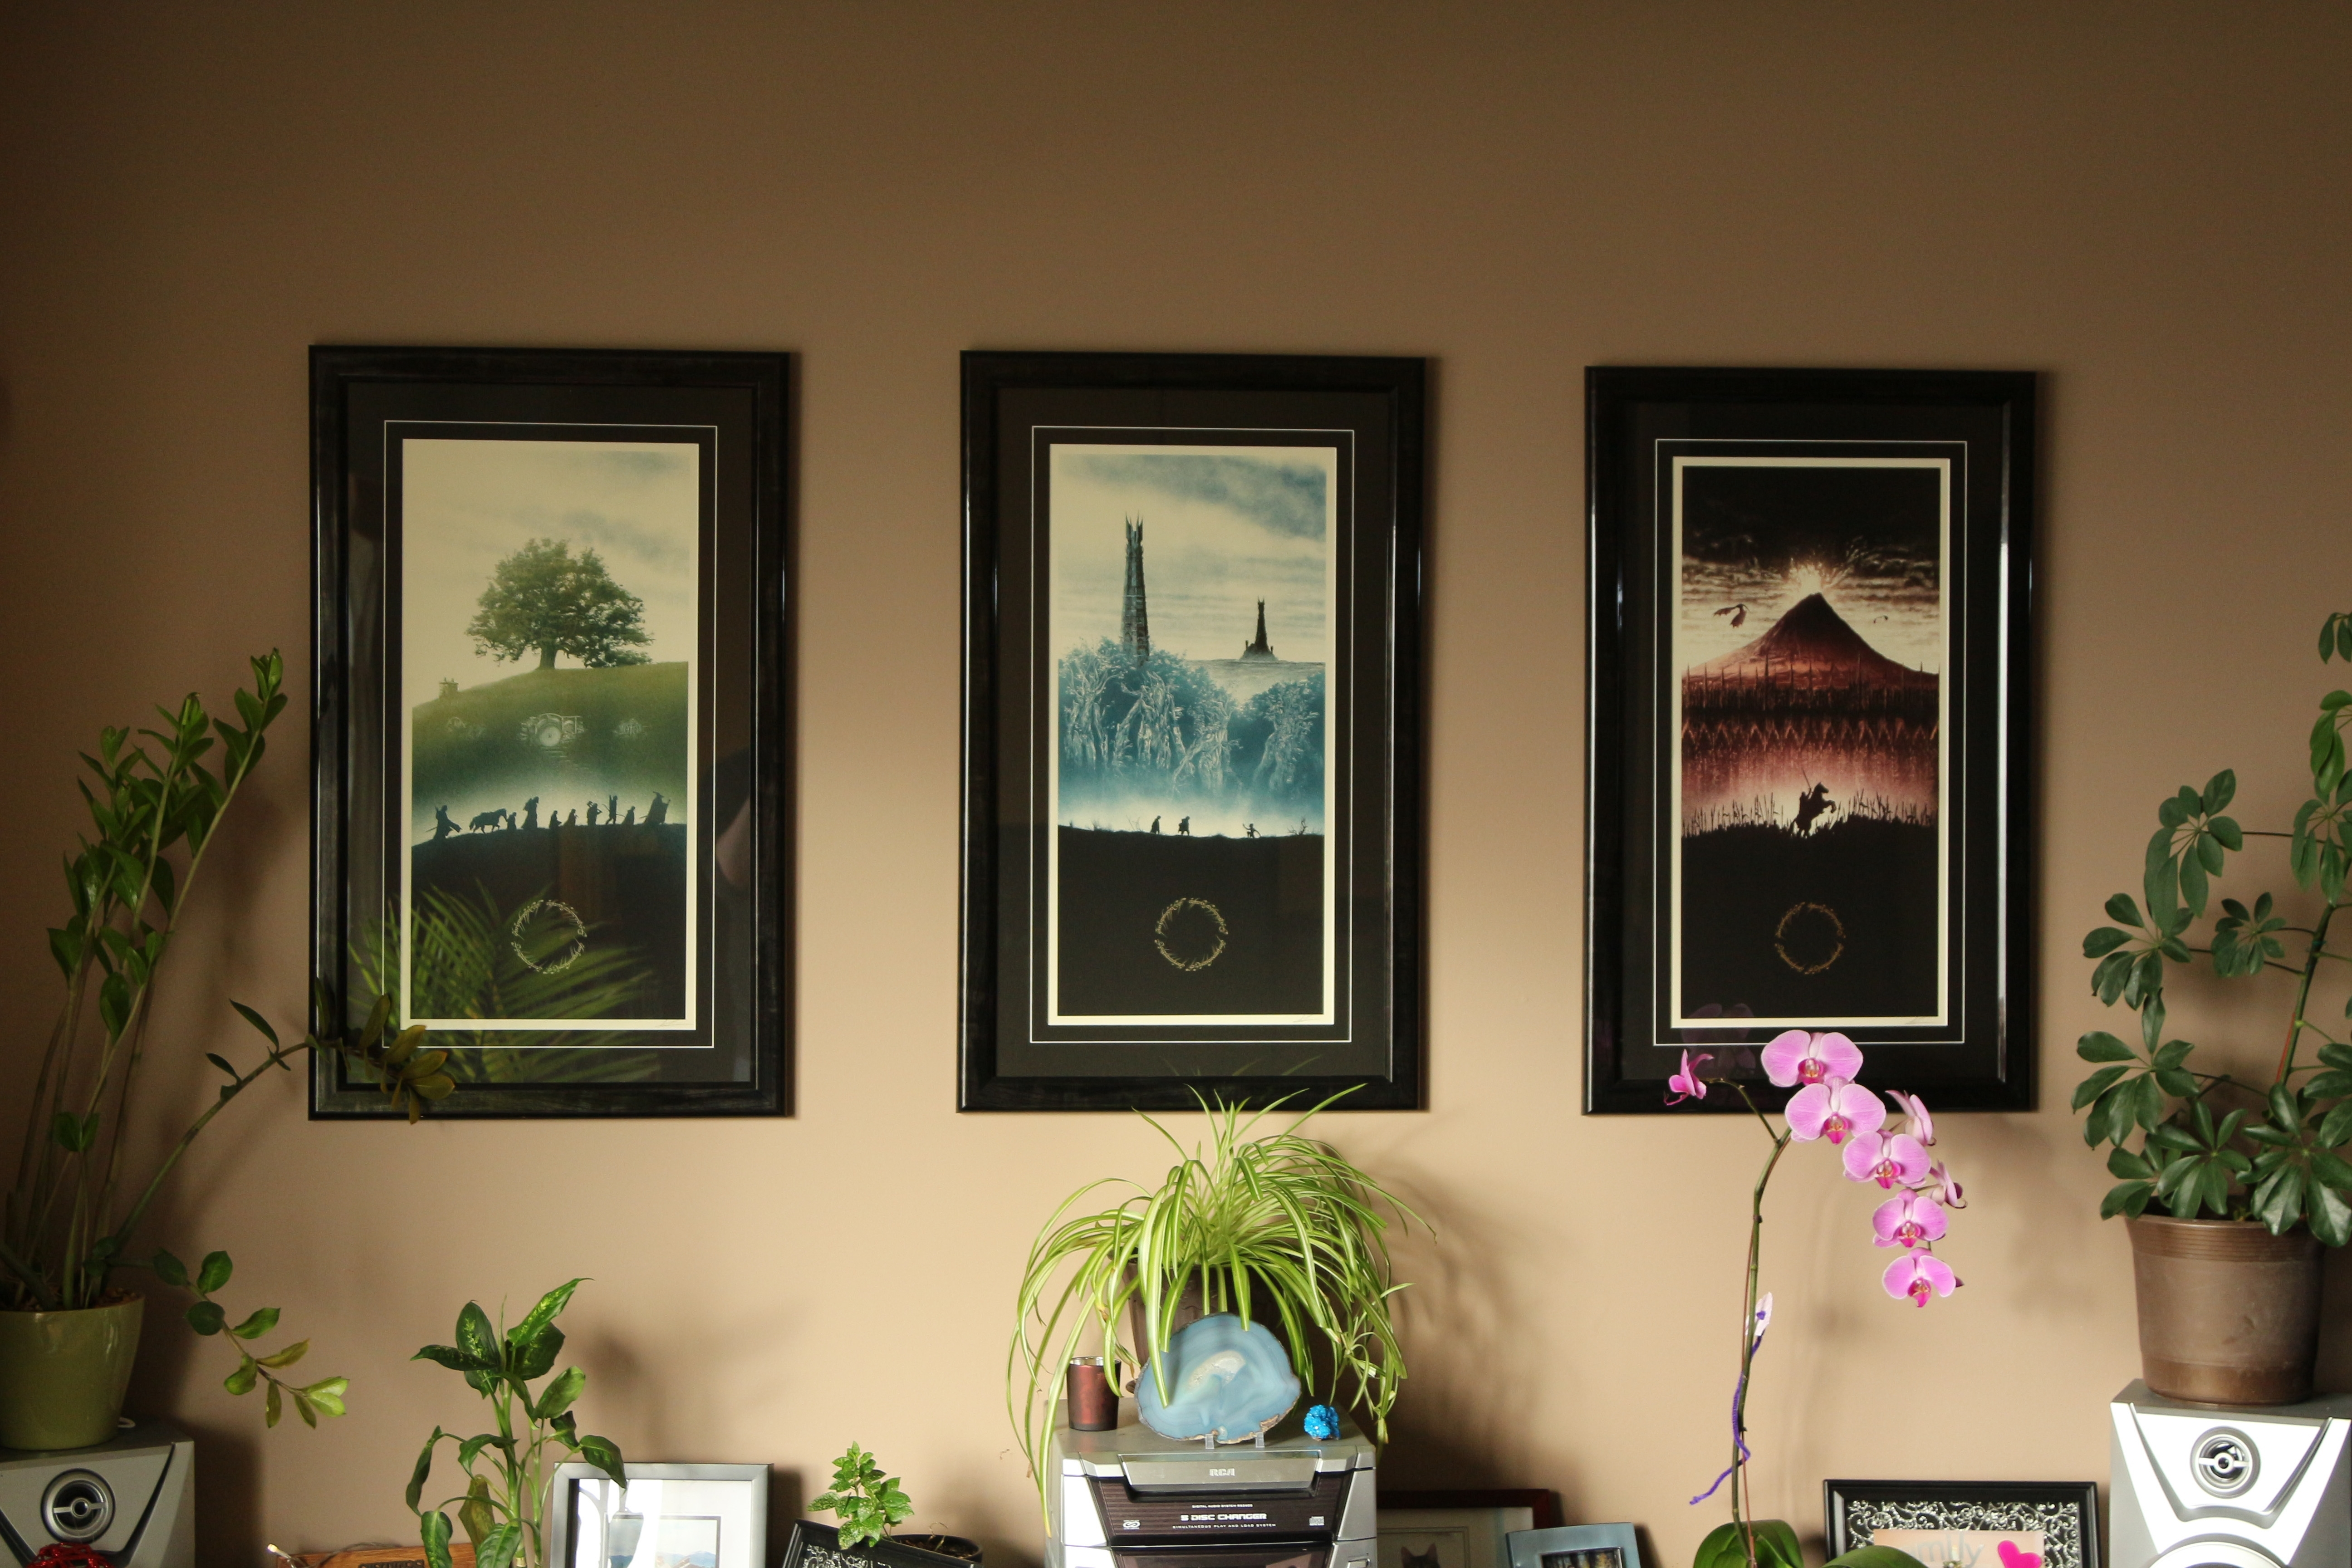 Lord Of The Rings Art Prints - Imgur throughout Lord Of The Rings Wall Art (Image 9 of 20)